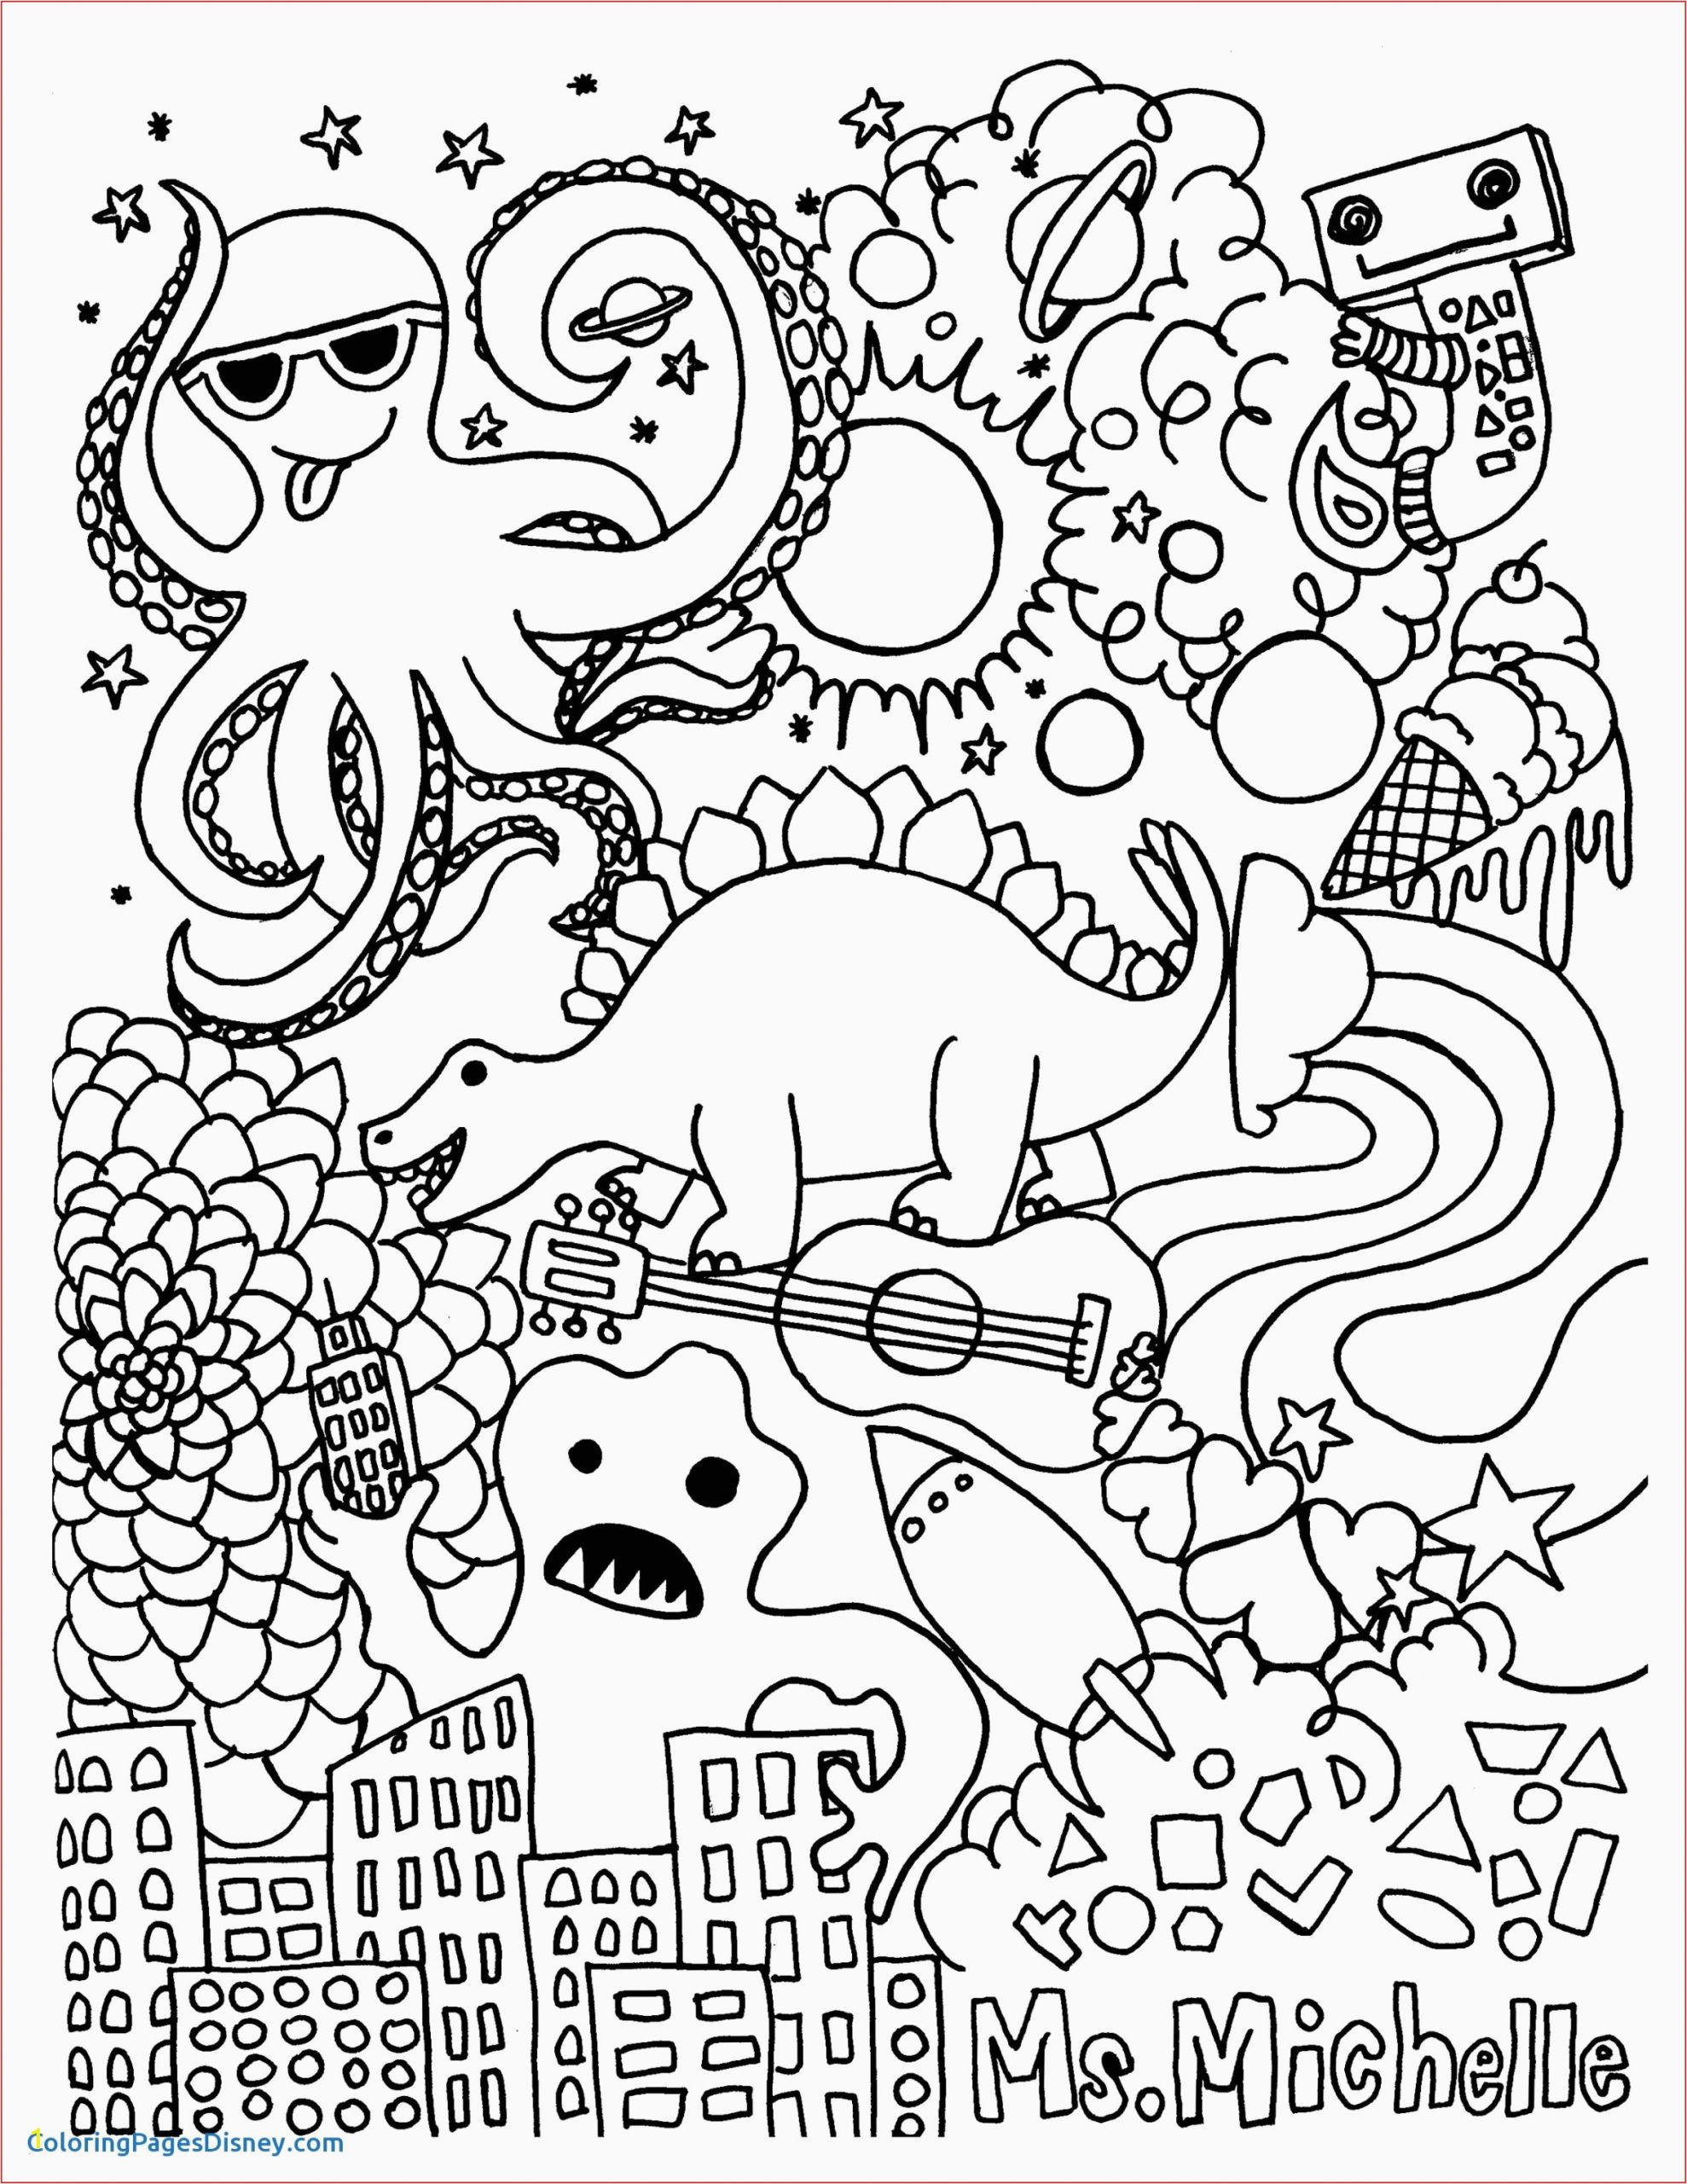 printable frozen coloring pages sharpie book intricate books adult paper lion bicycle preschool tropical wonderland colouring pantone chip cat adults disney